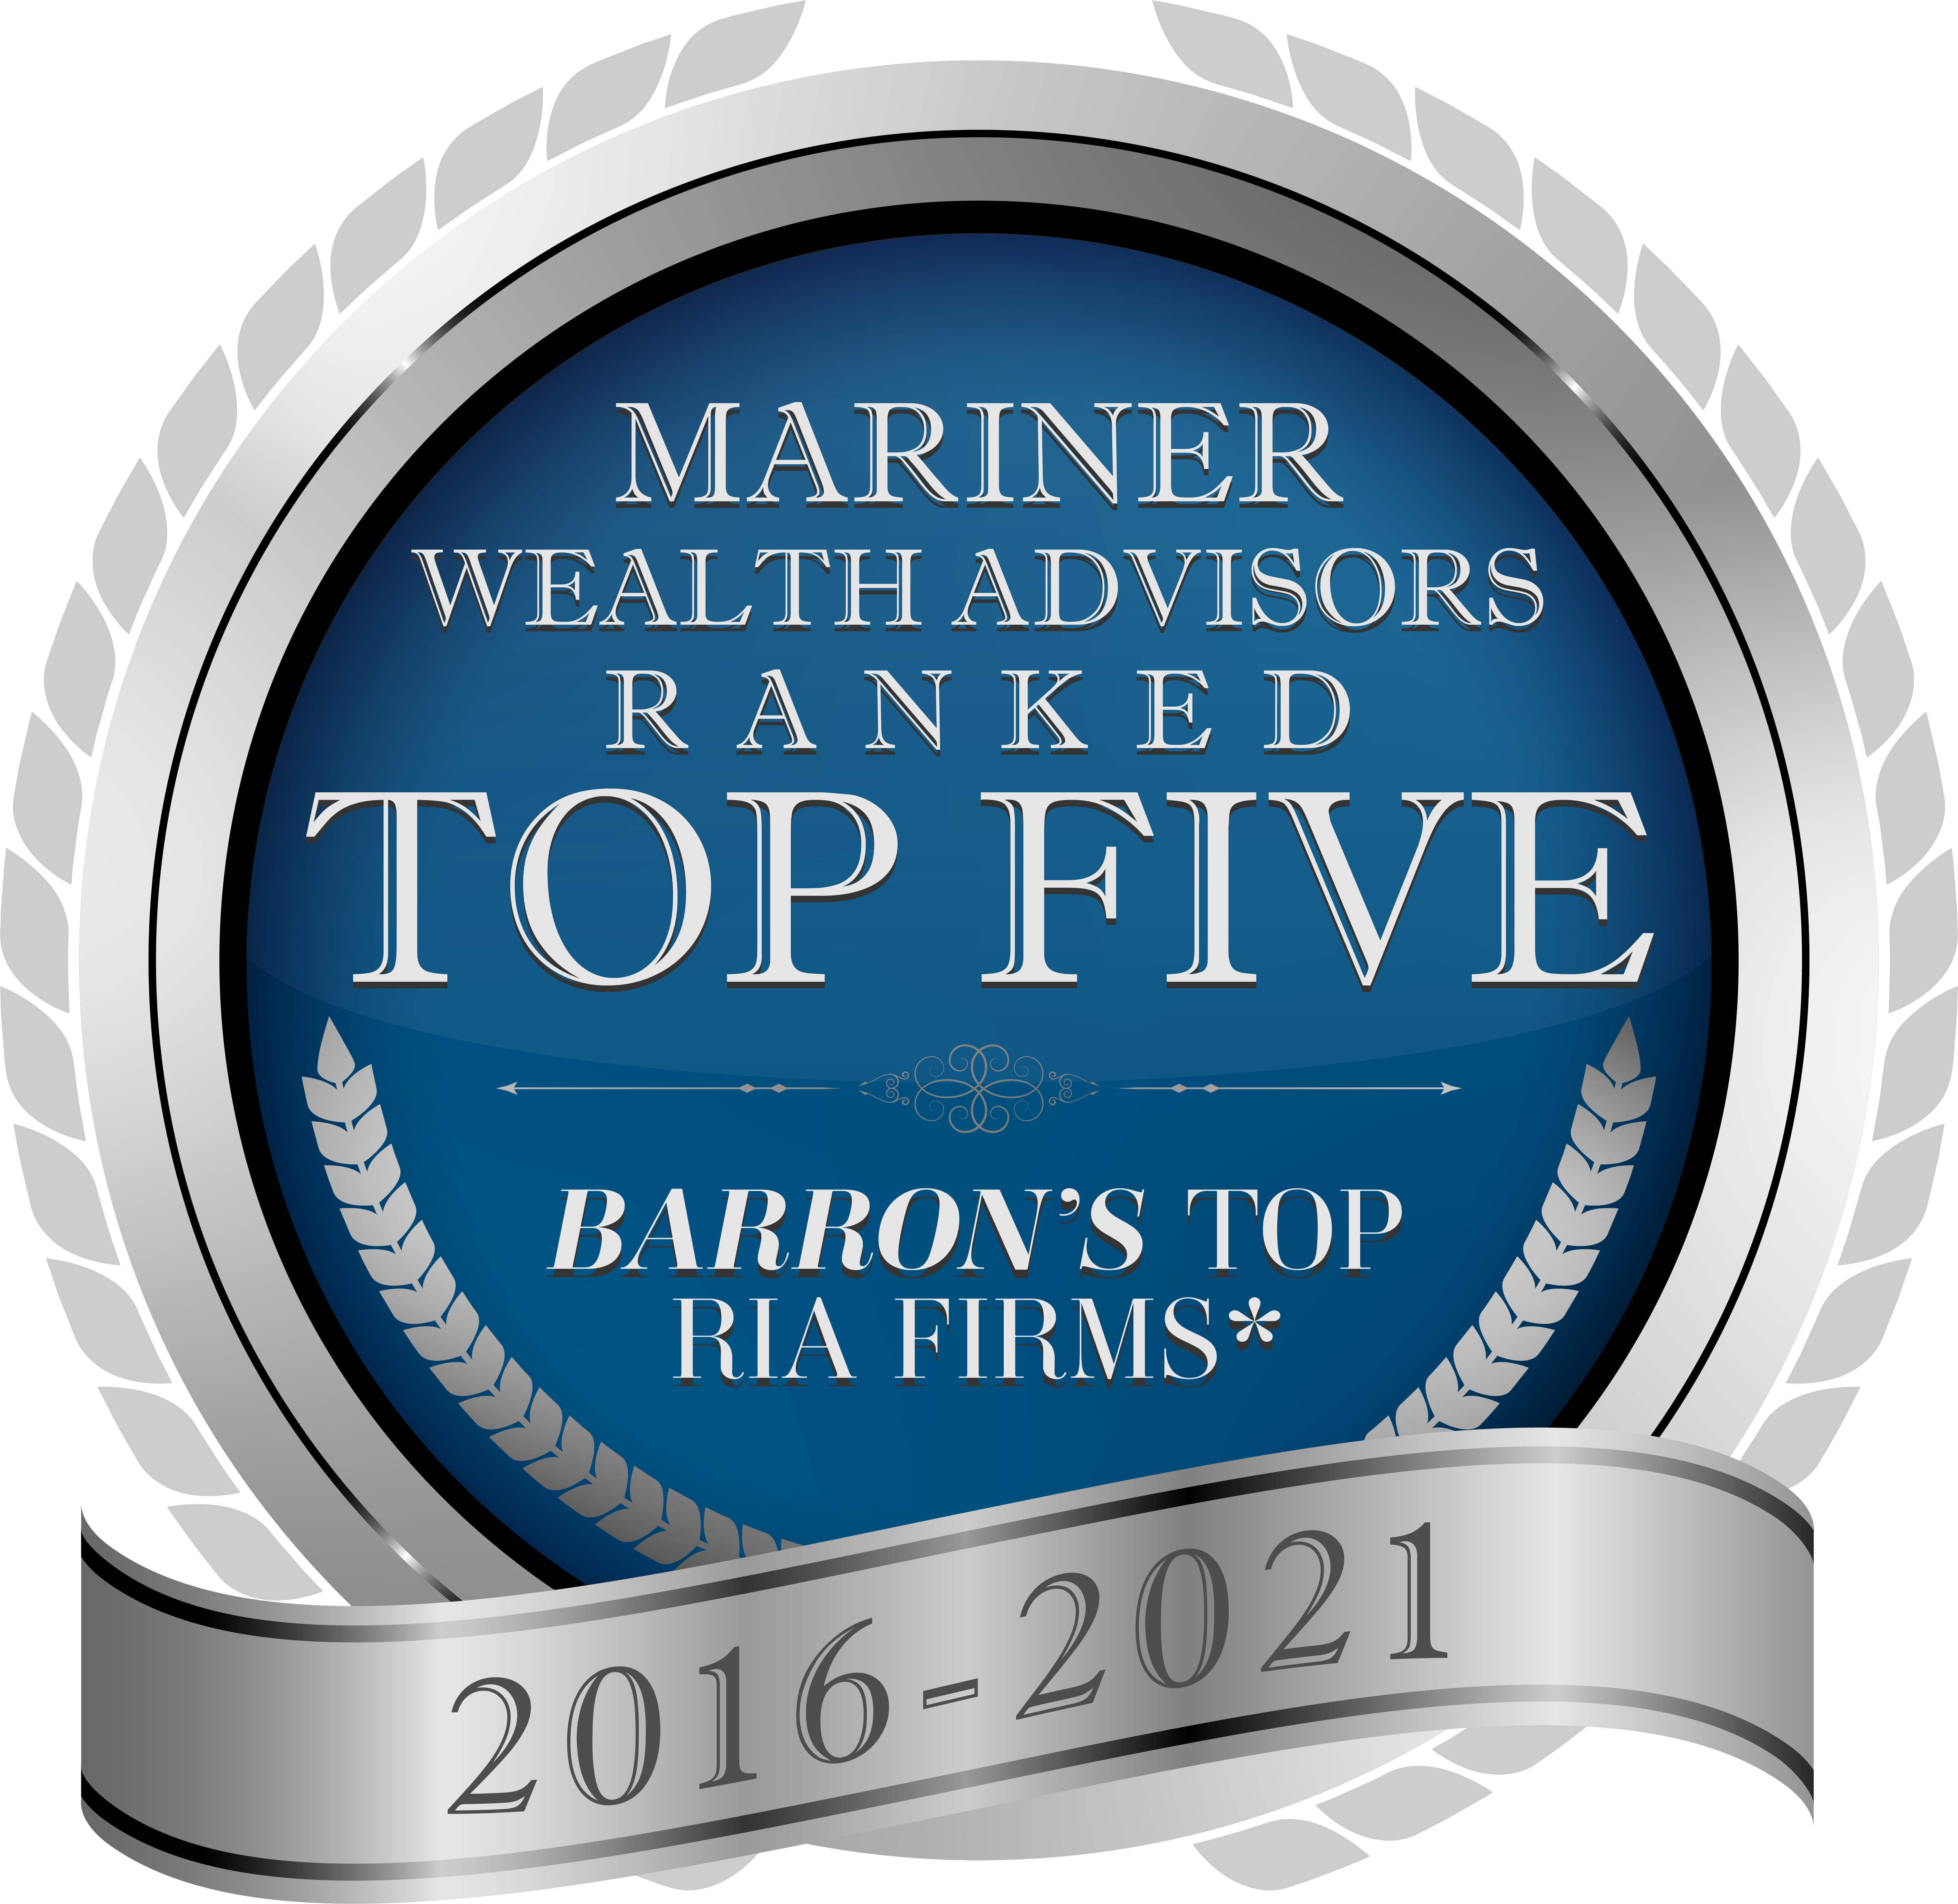 Barron's has ranked our firm as a top five RIA for the last four years